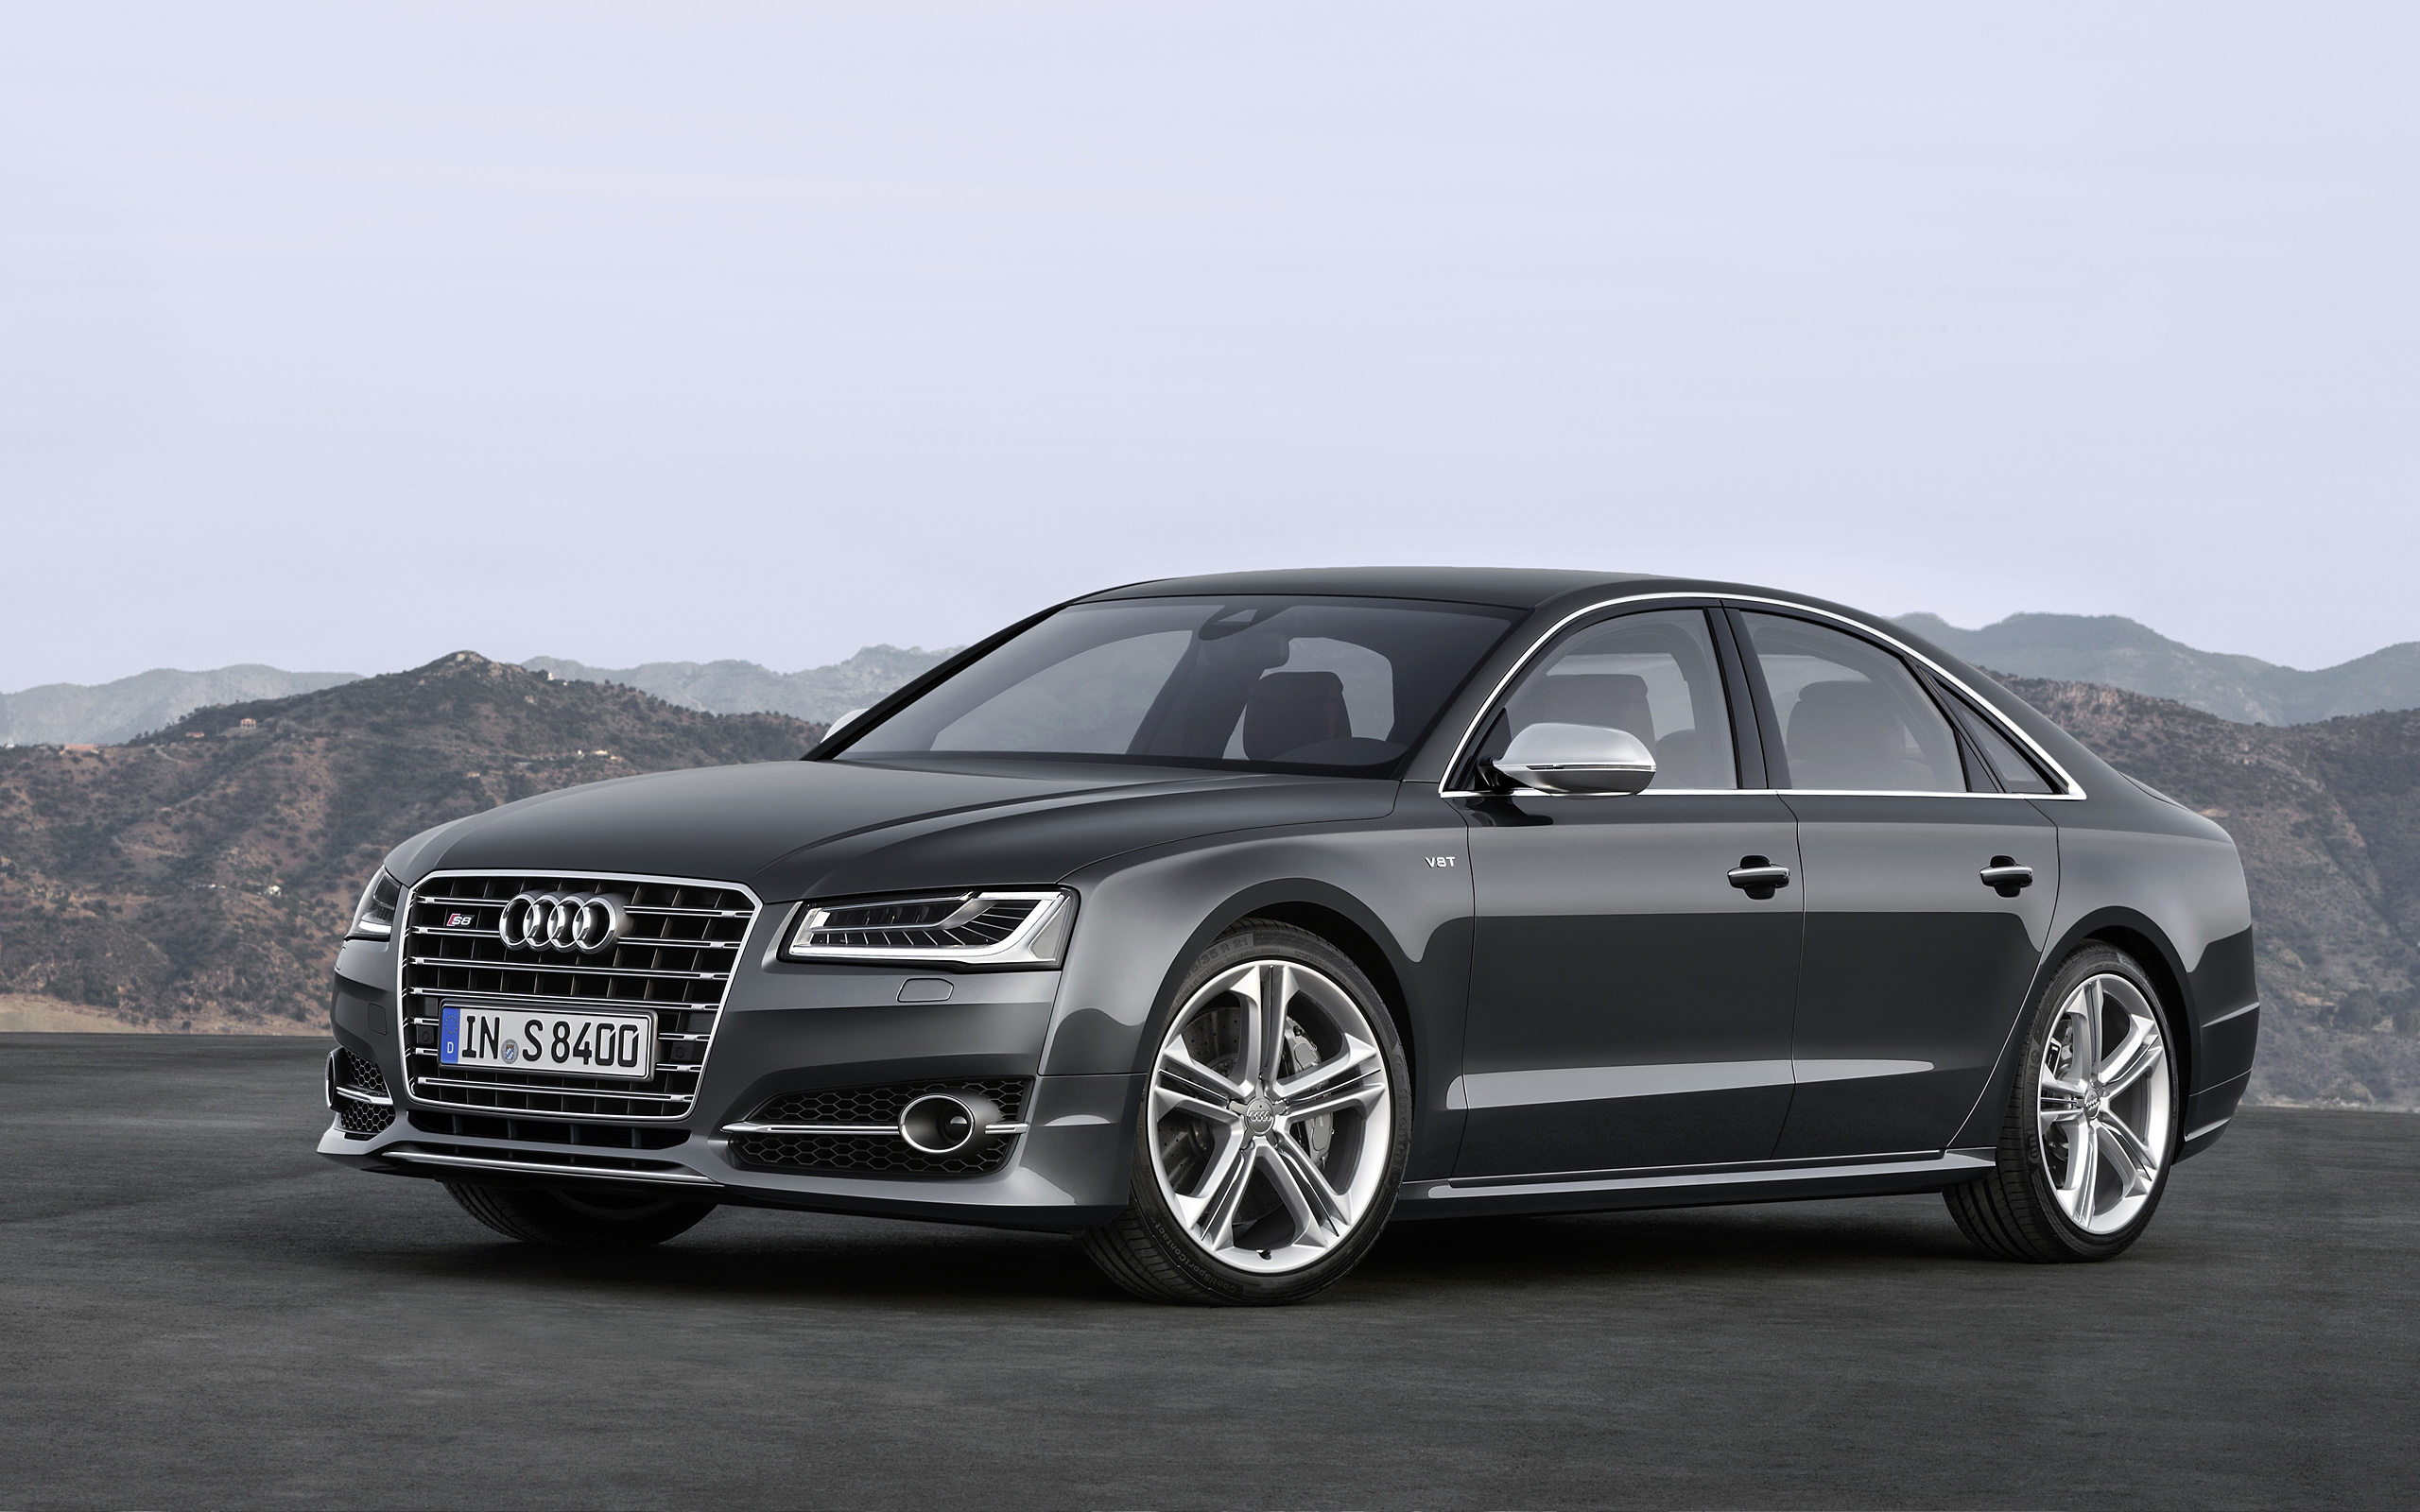 66 Audi A8 HD Wallpapers Background Images 2560x1600